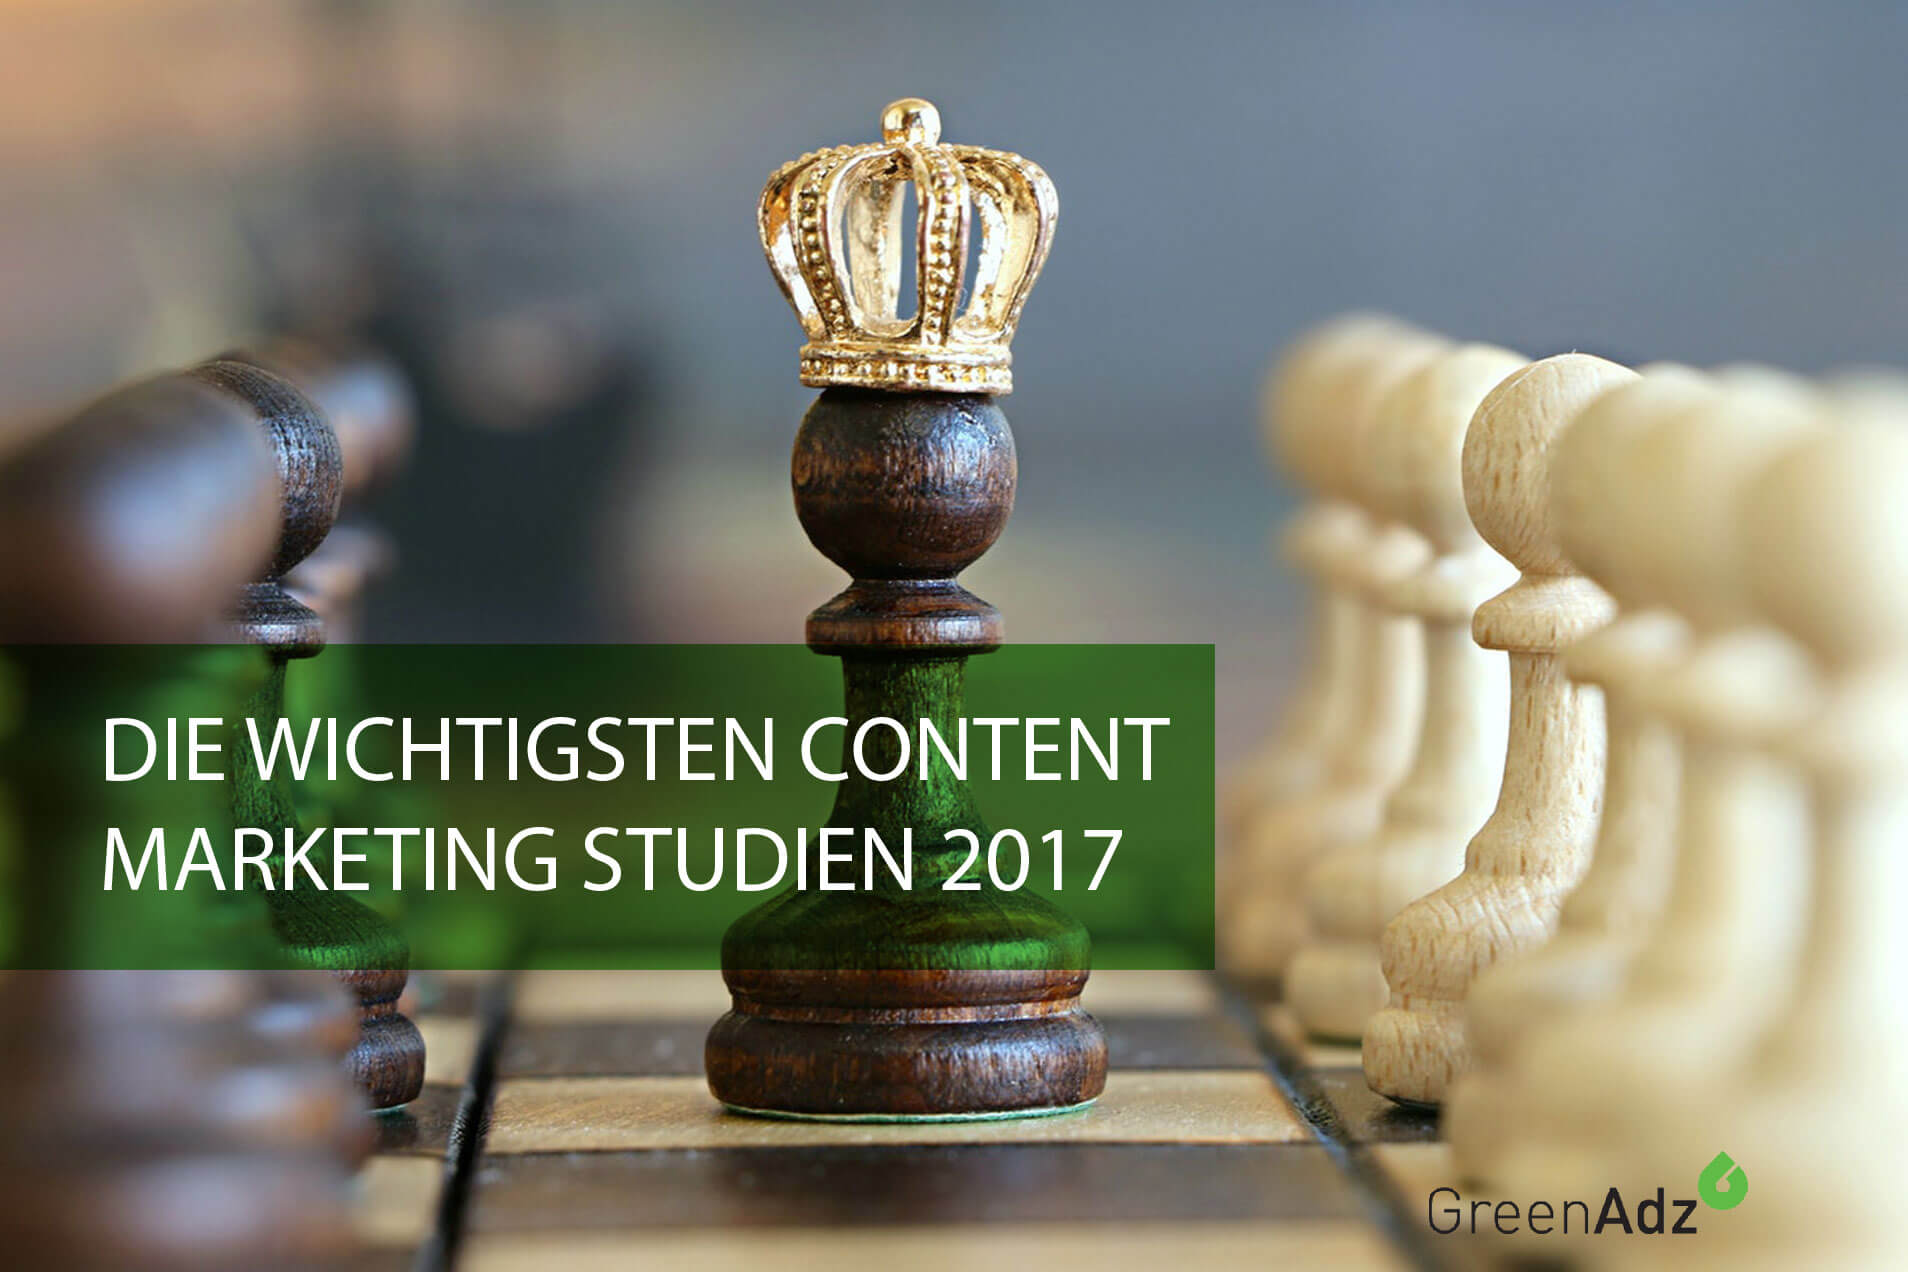 Top Content Marketing Studien